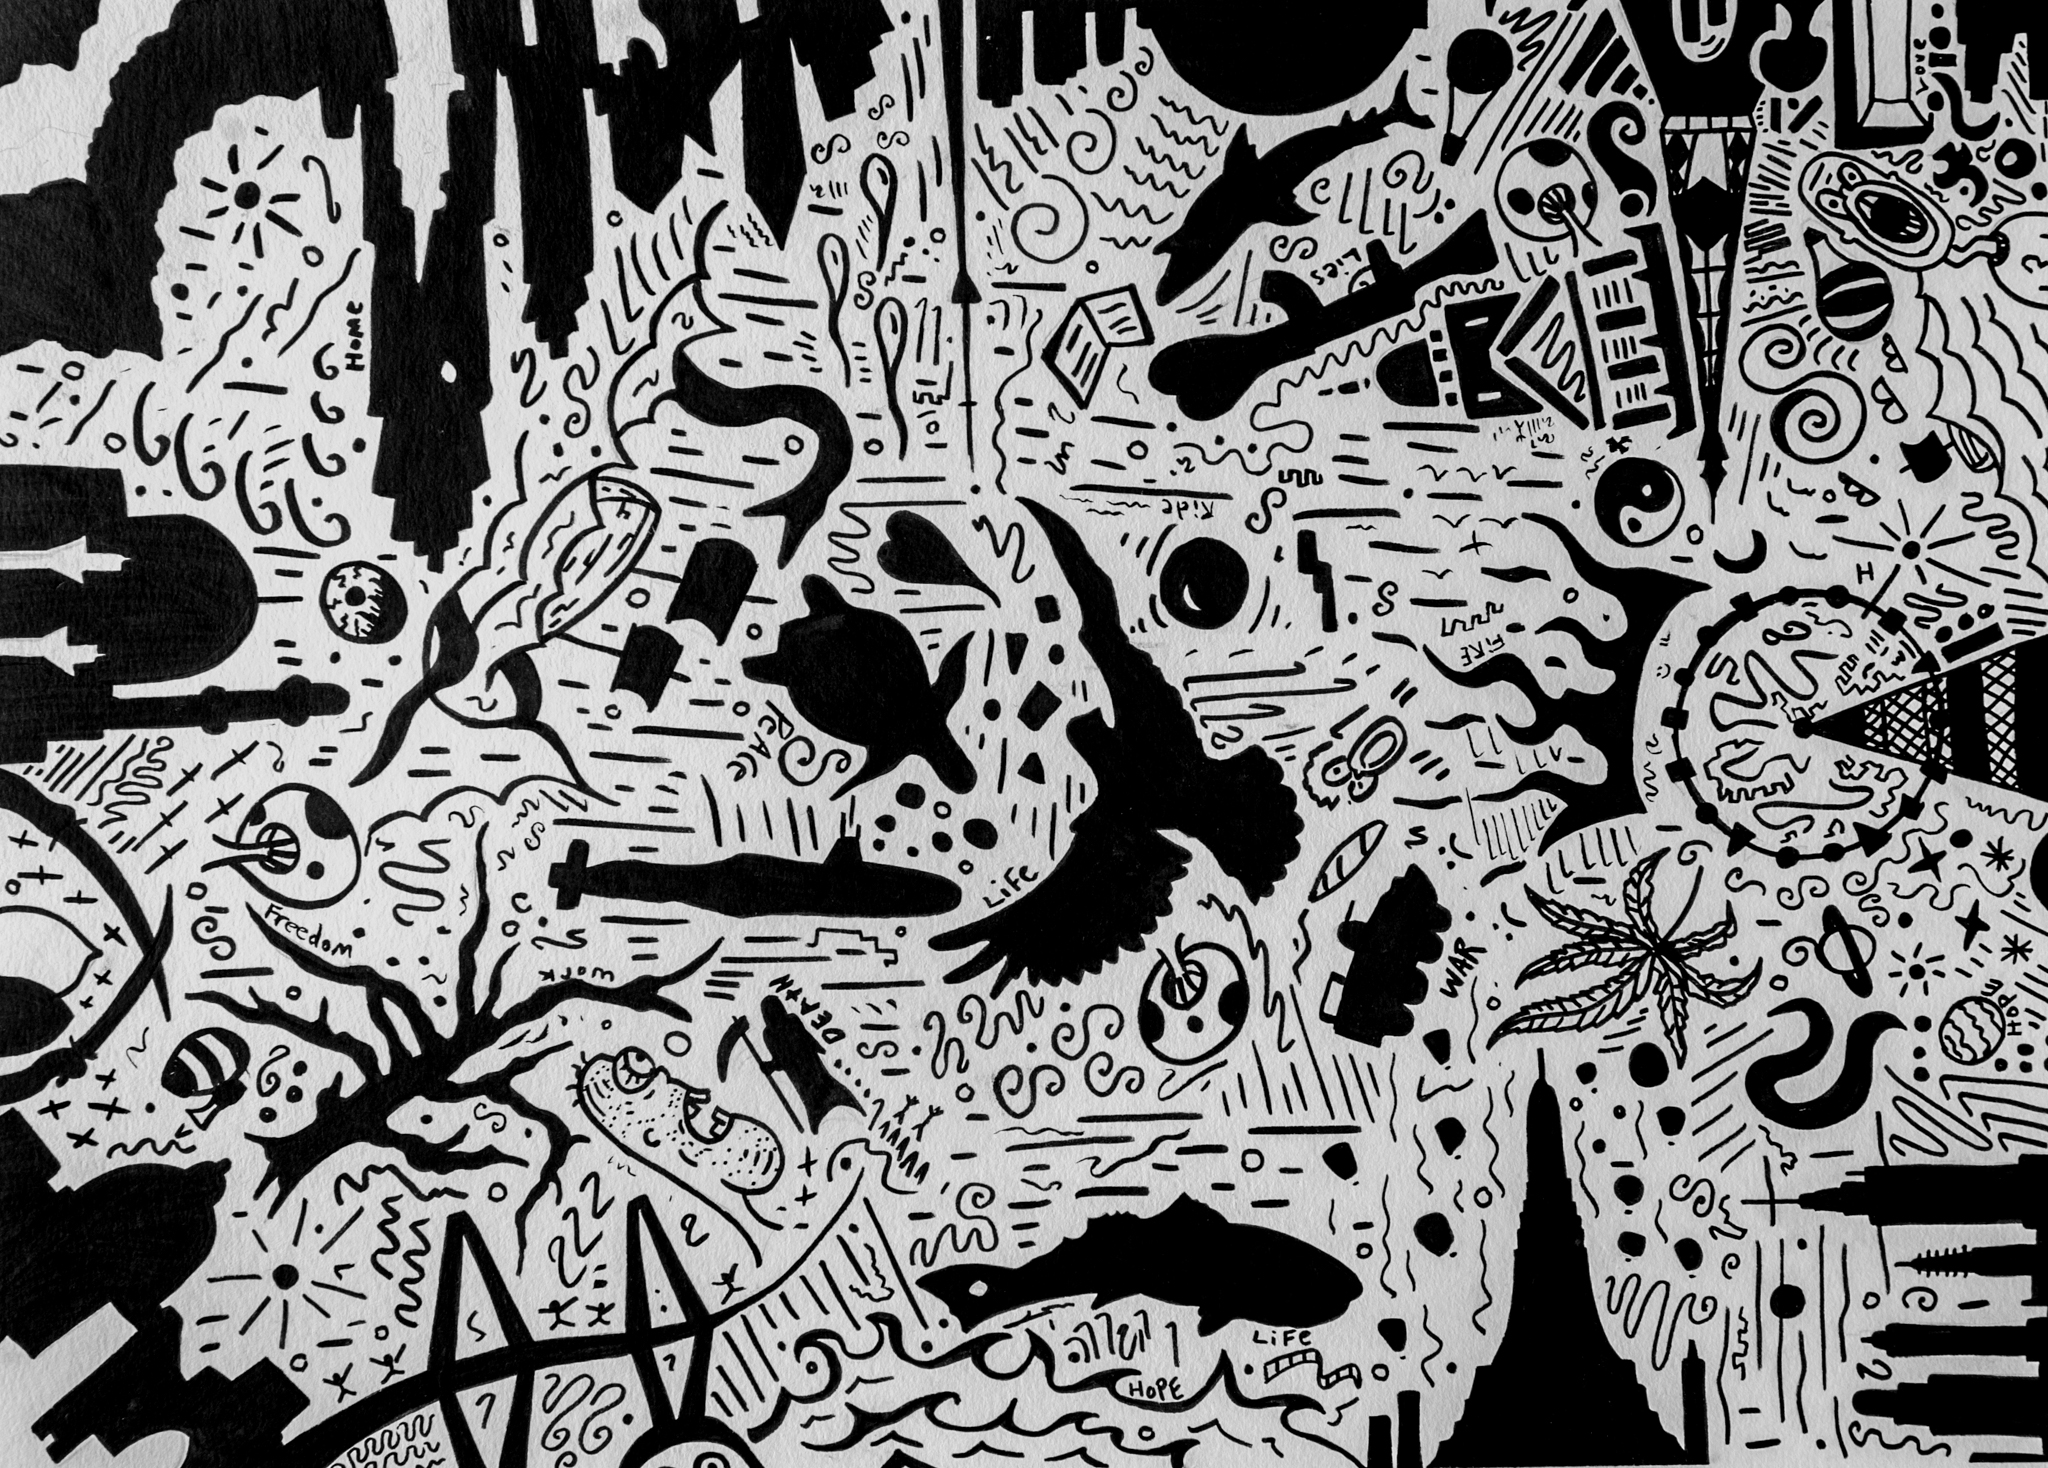 MIND ORIGINAL PEN AND INK DRAWING 18x24  $250